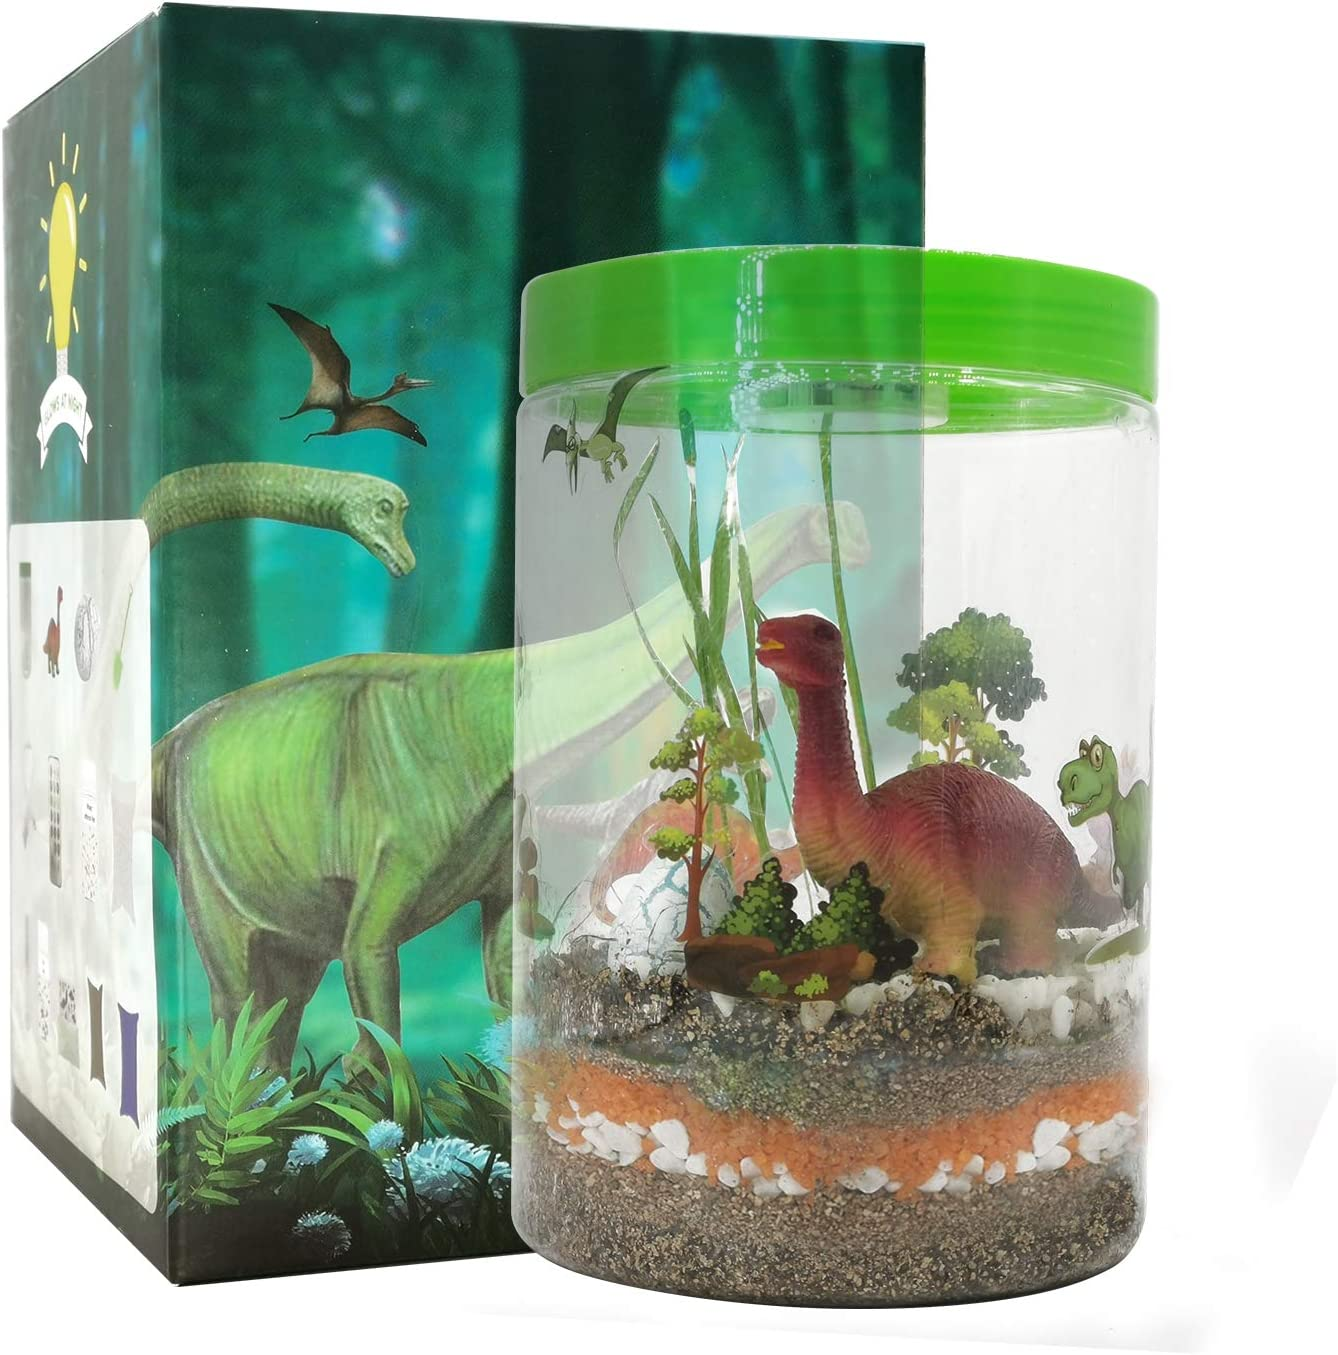 TYZEST Light-up Terrarium Kit for Kids with LED Light on Lid - Science Kits for Boys & Girls -STEM Educational DIY Science Project- Create Customized Mini Garden for Children